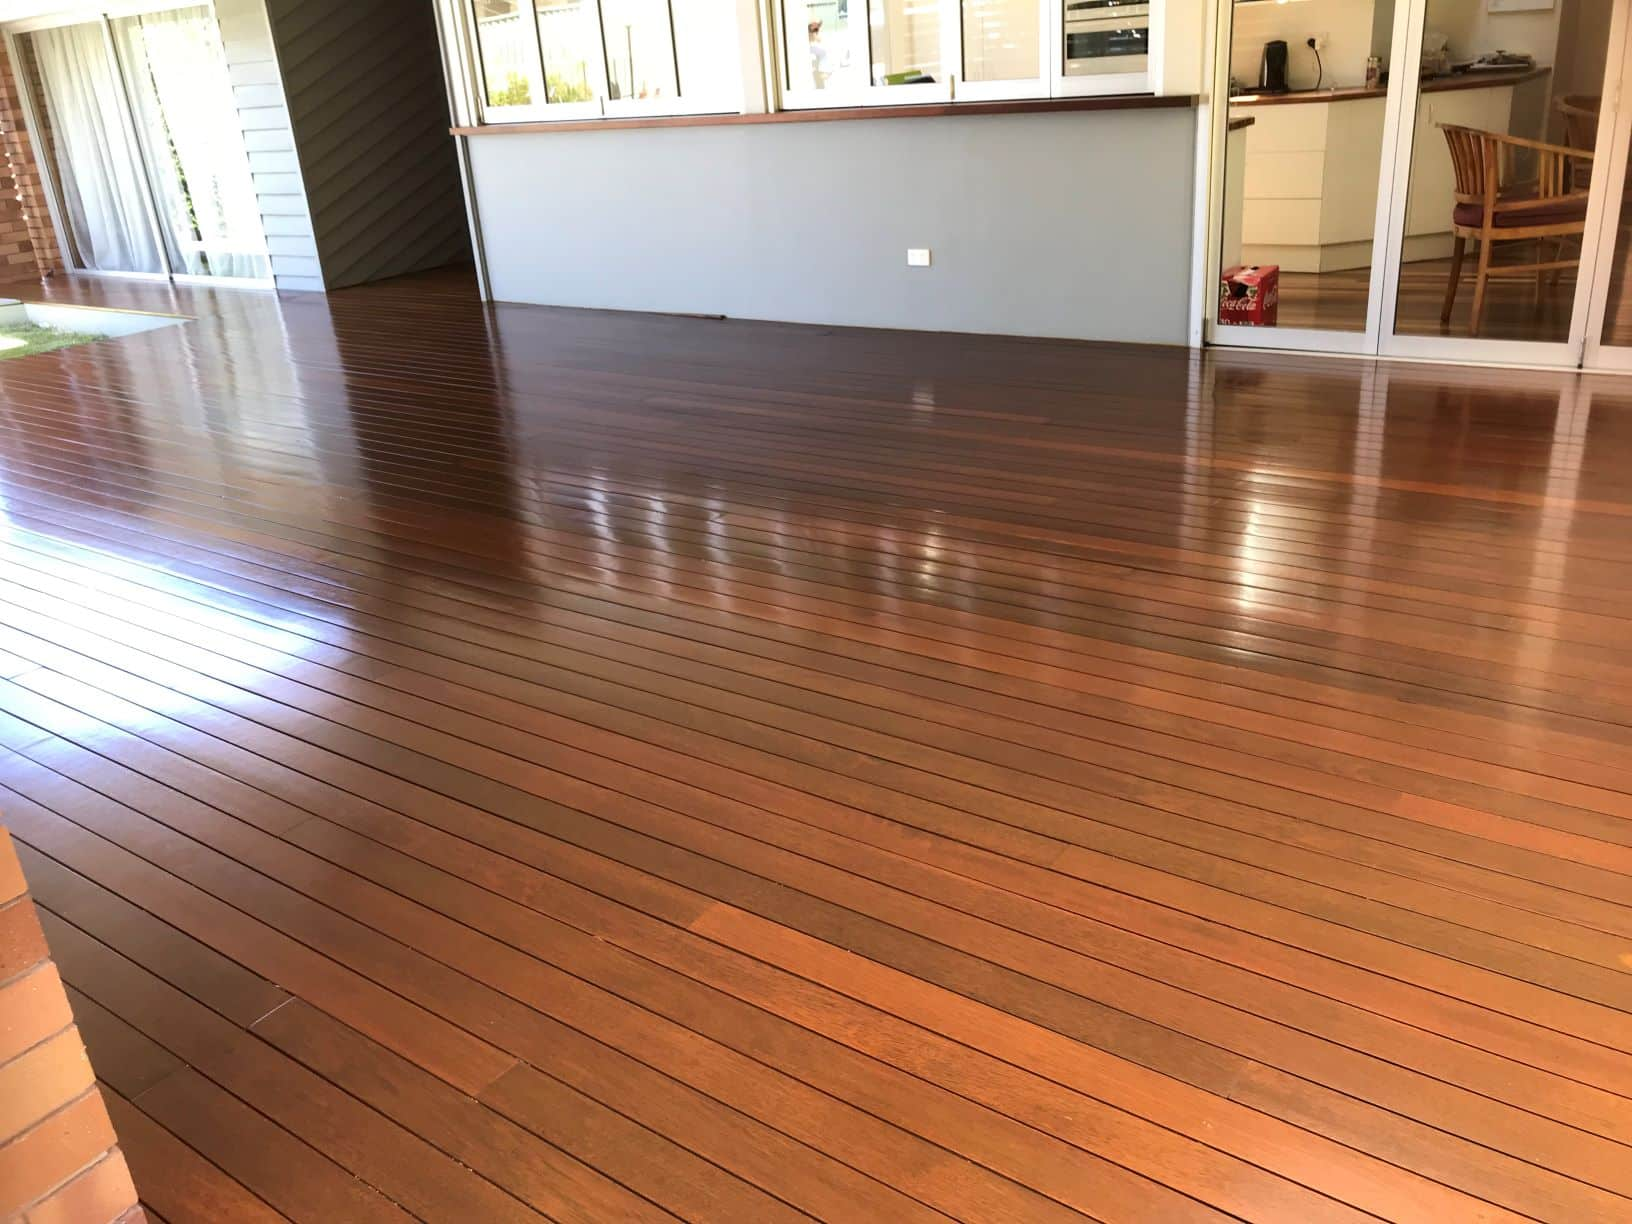 Timber deck coated with Sikkens in Ashgrove, Brisbane